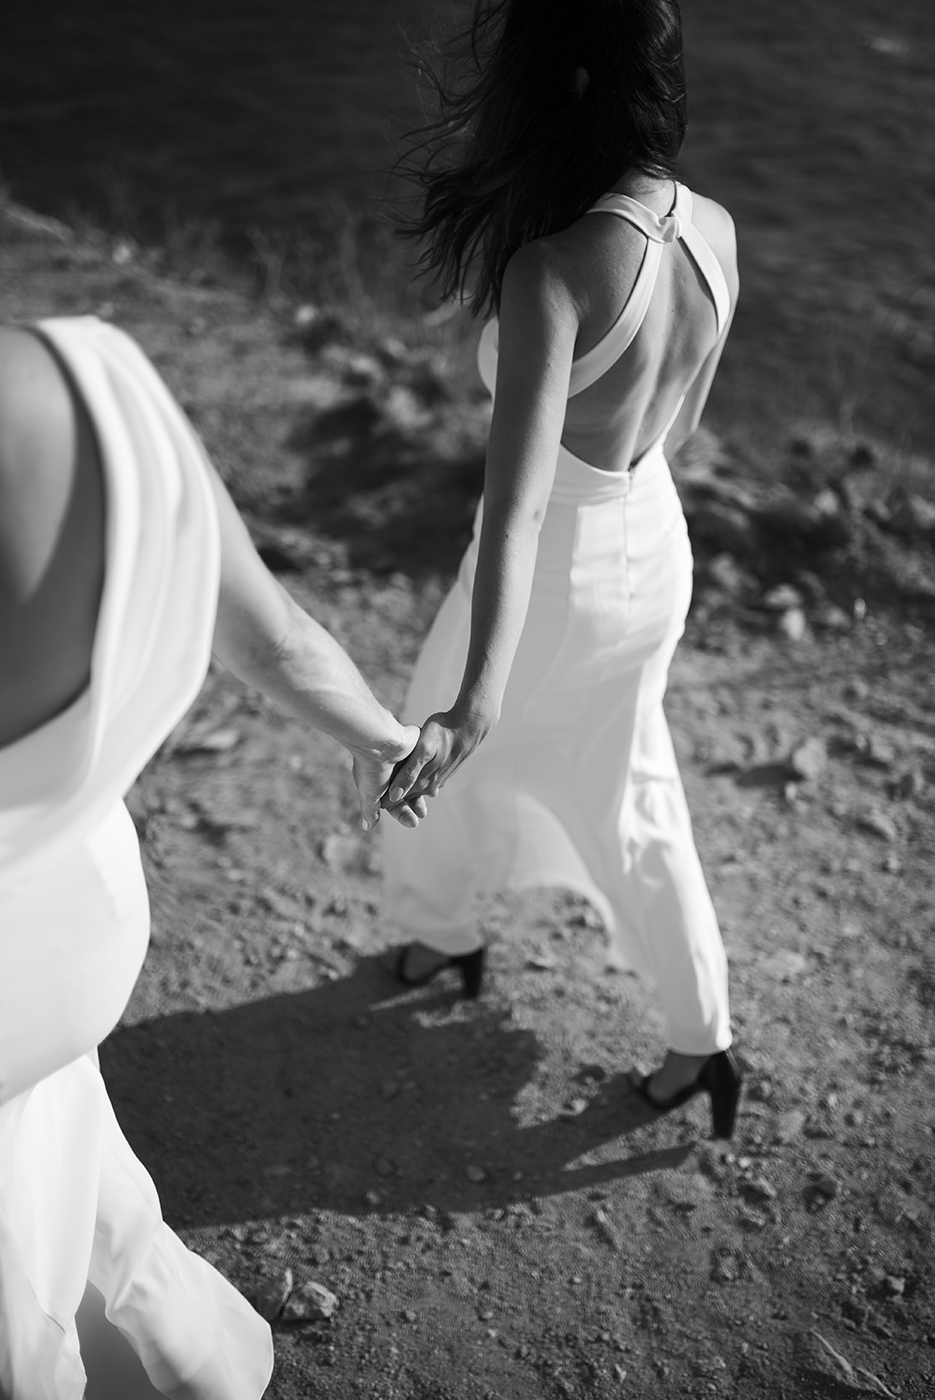 Kirill-Samarits-Wedding-Photography-Greece-AThens-Mykonos-Santorini-Same-Sex-Wedding-Photographer-Candice-Mykonos (14)